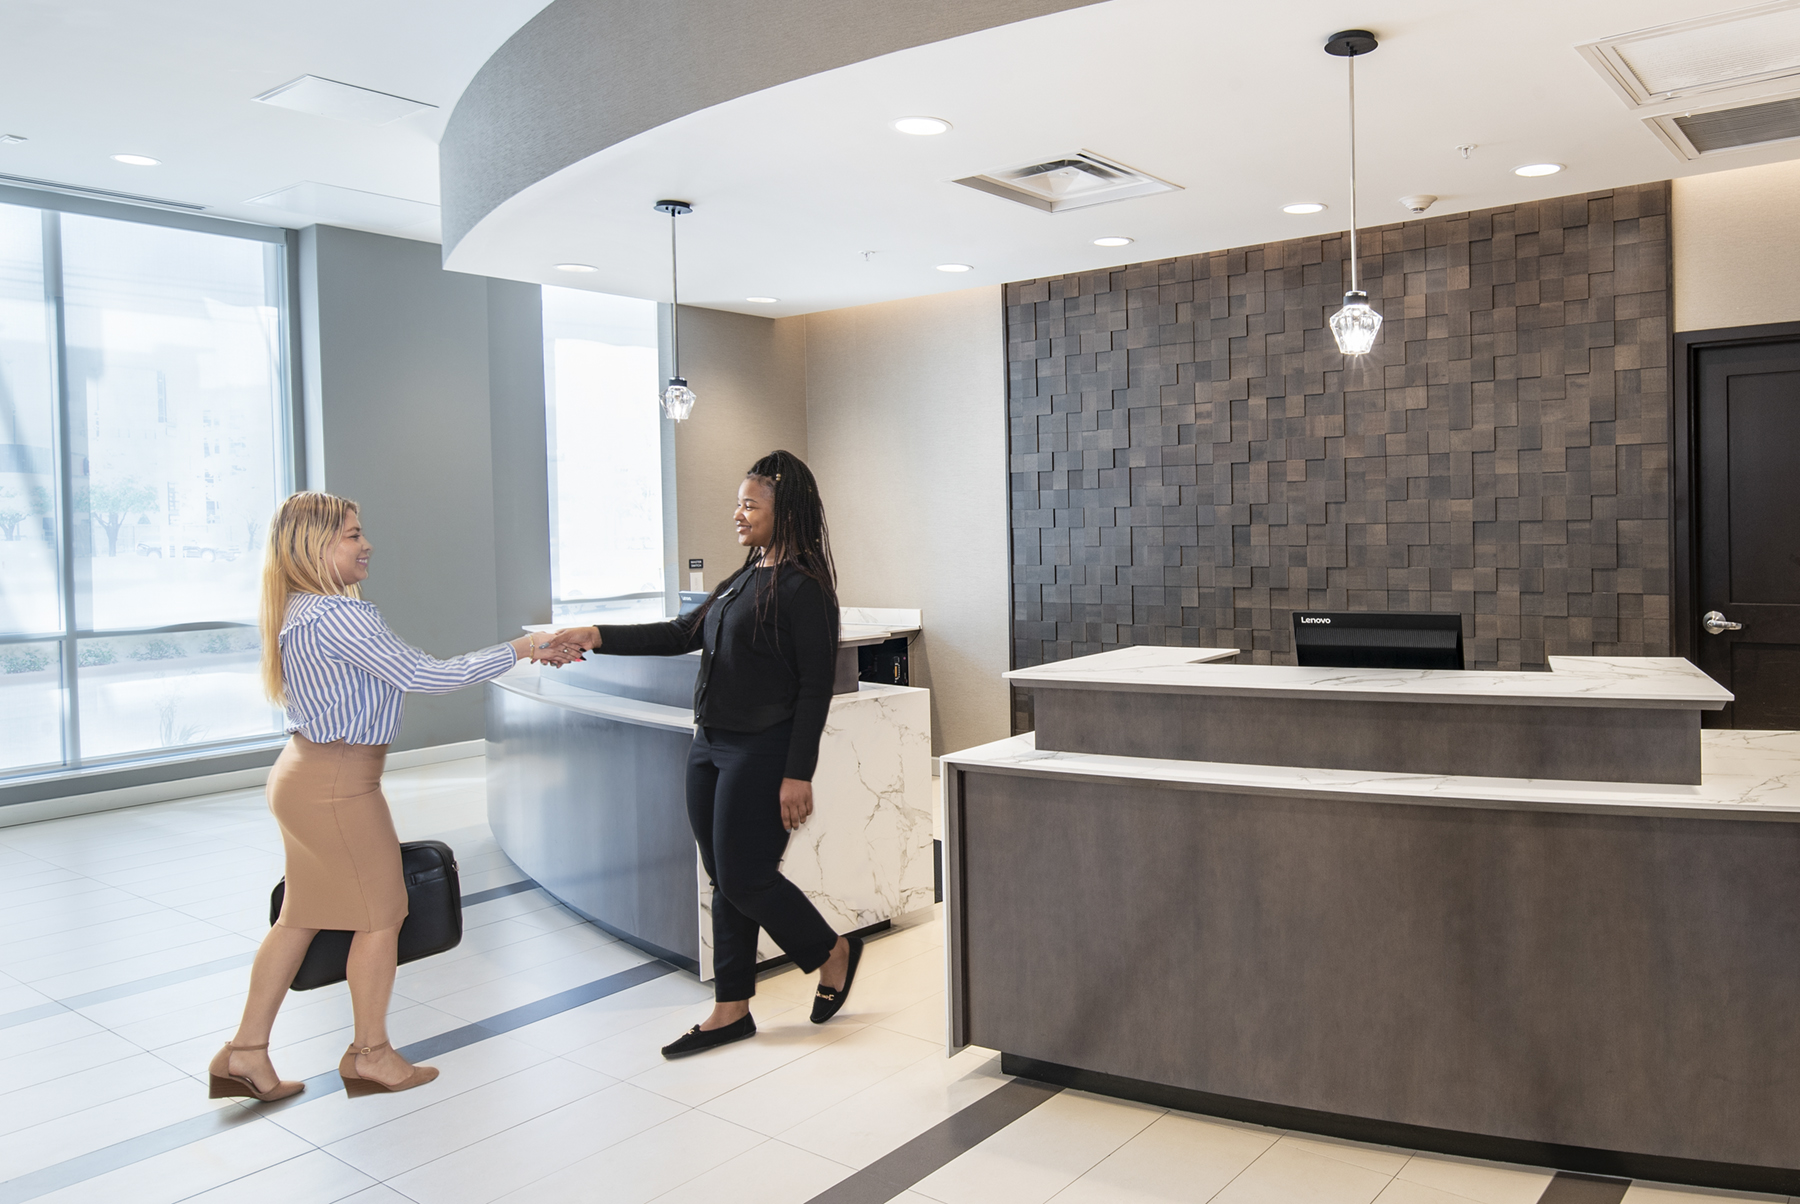 photo of a concierge greeting a guest in a hotel lobby